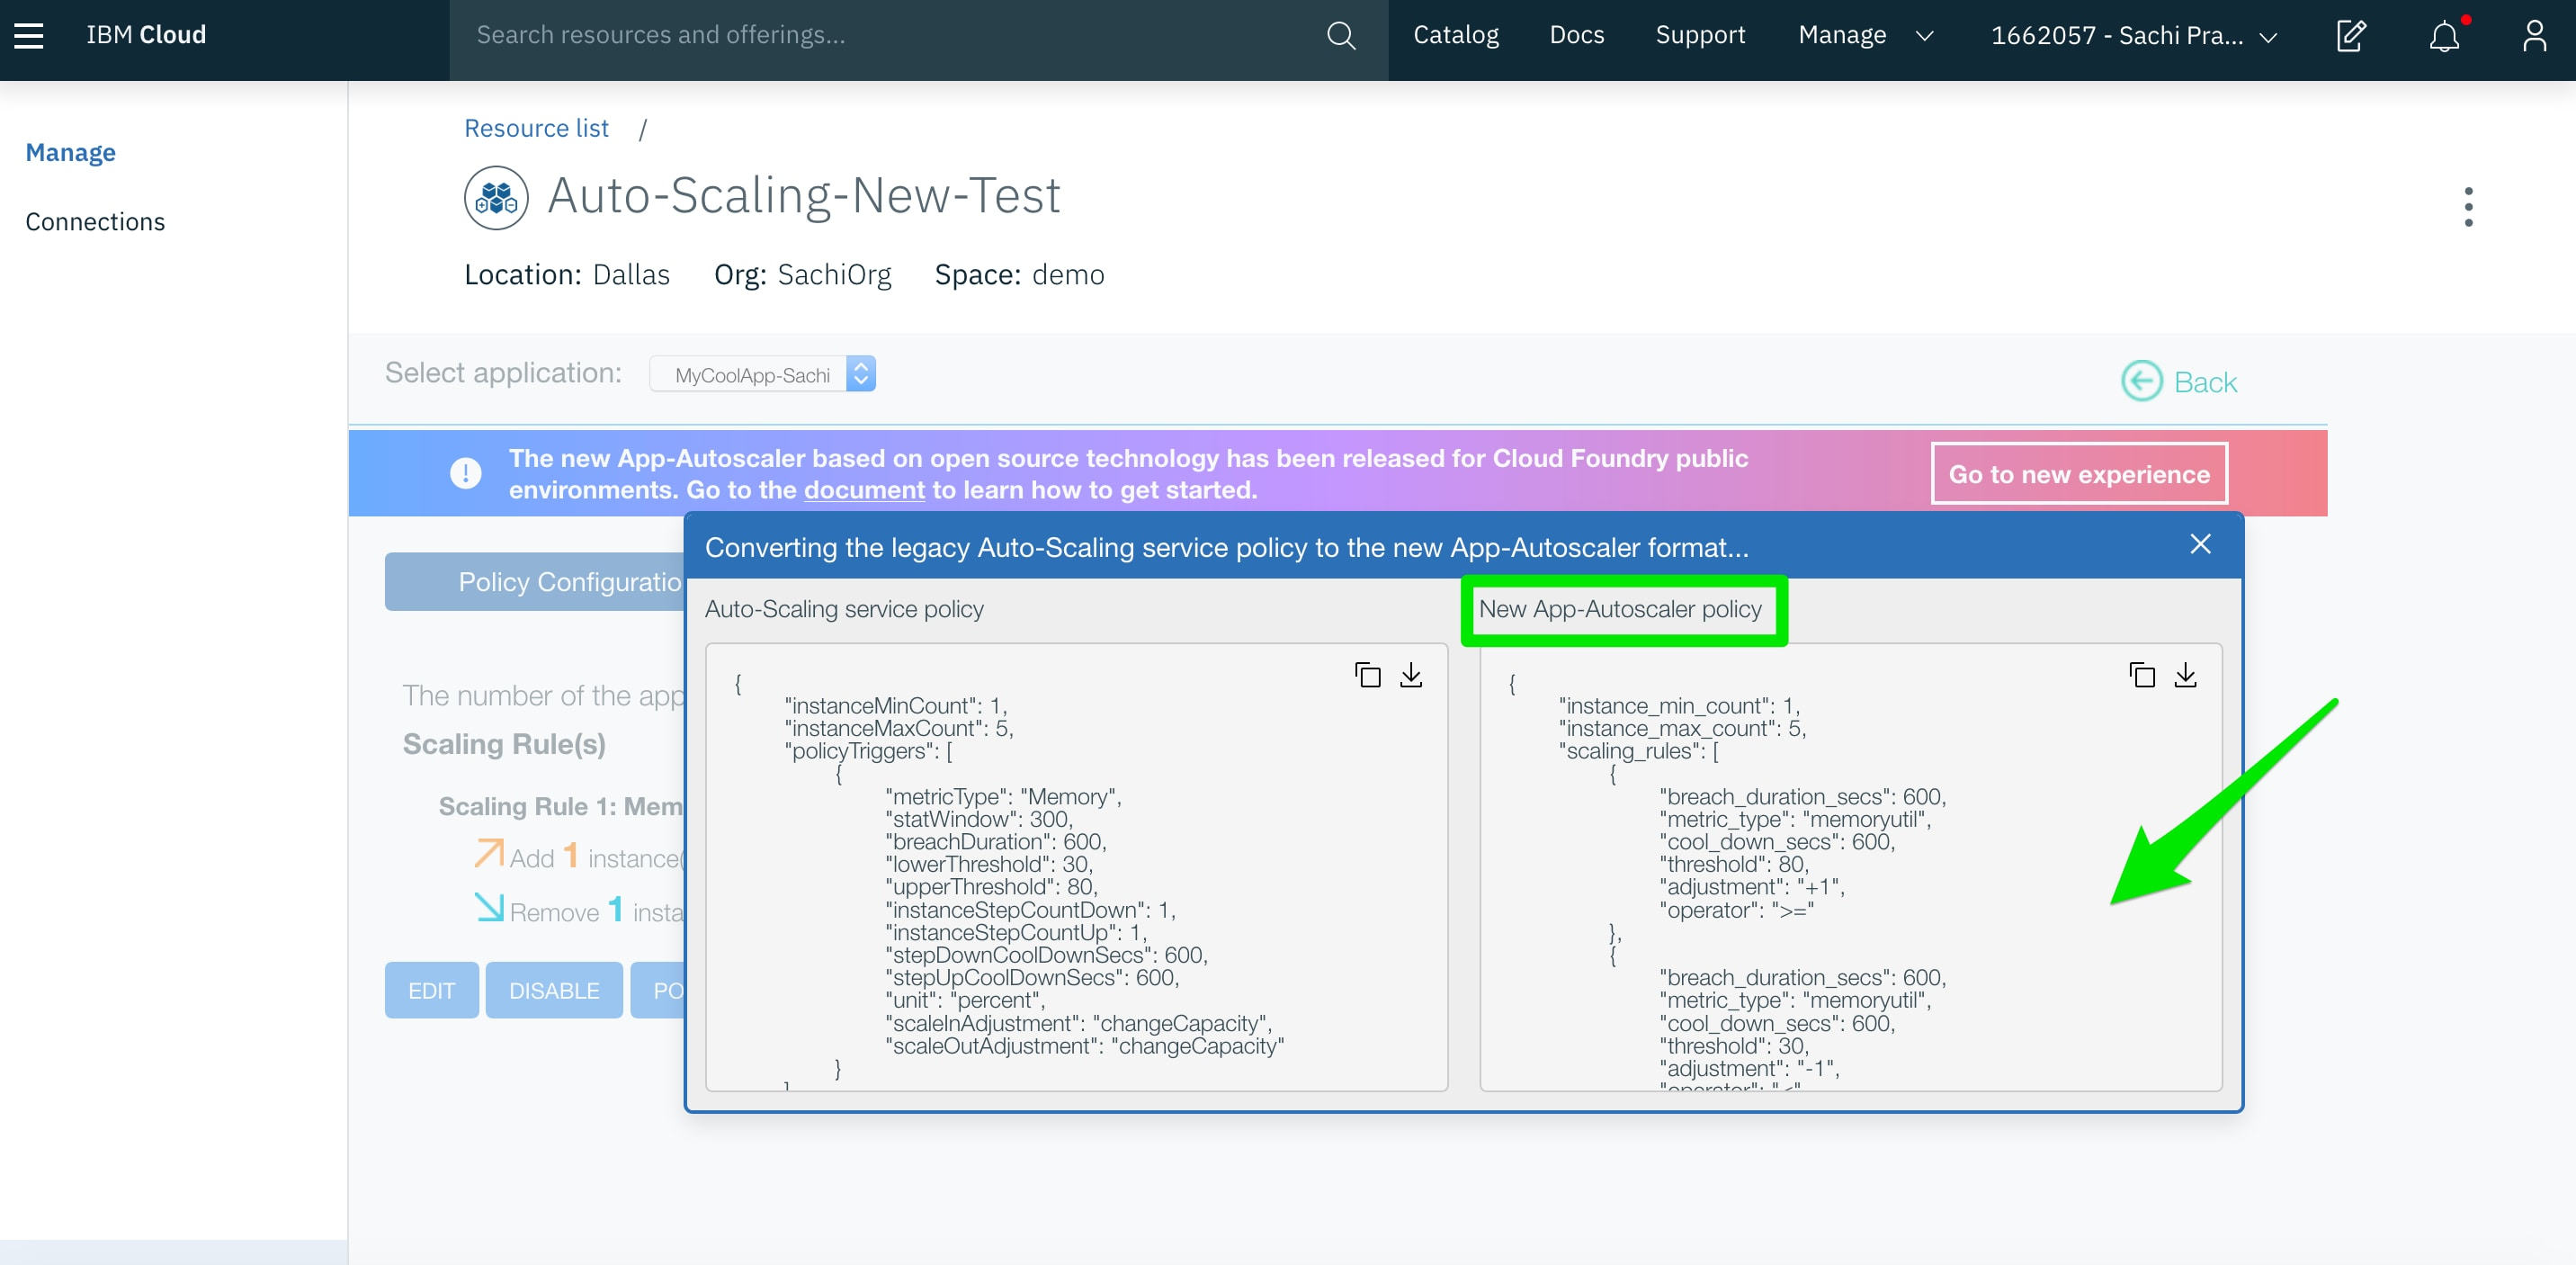 How to Migrate Auto-Scaling Policies for Cloud Foundry Apps | IBM